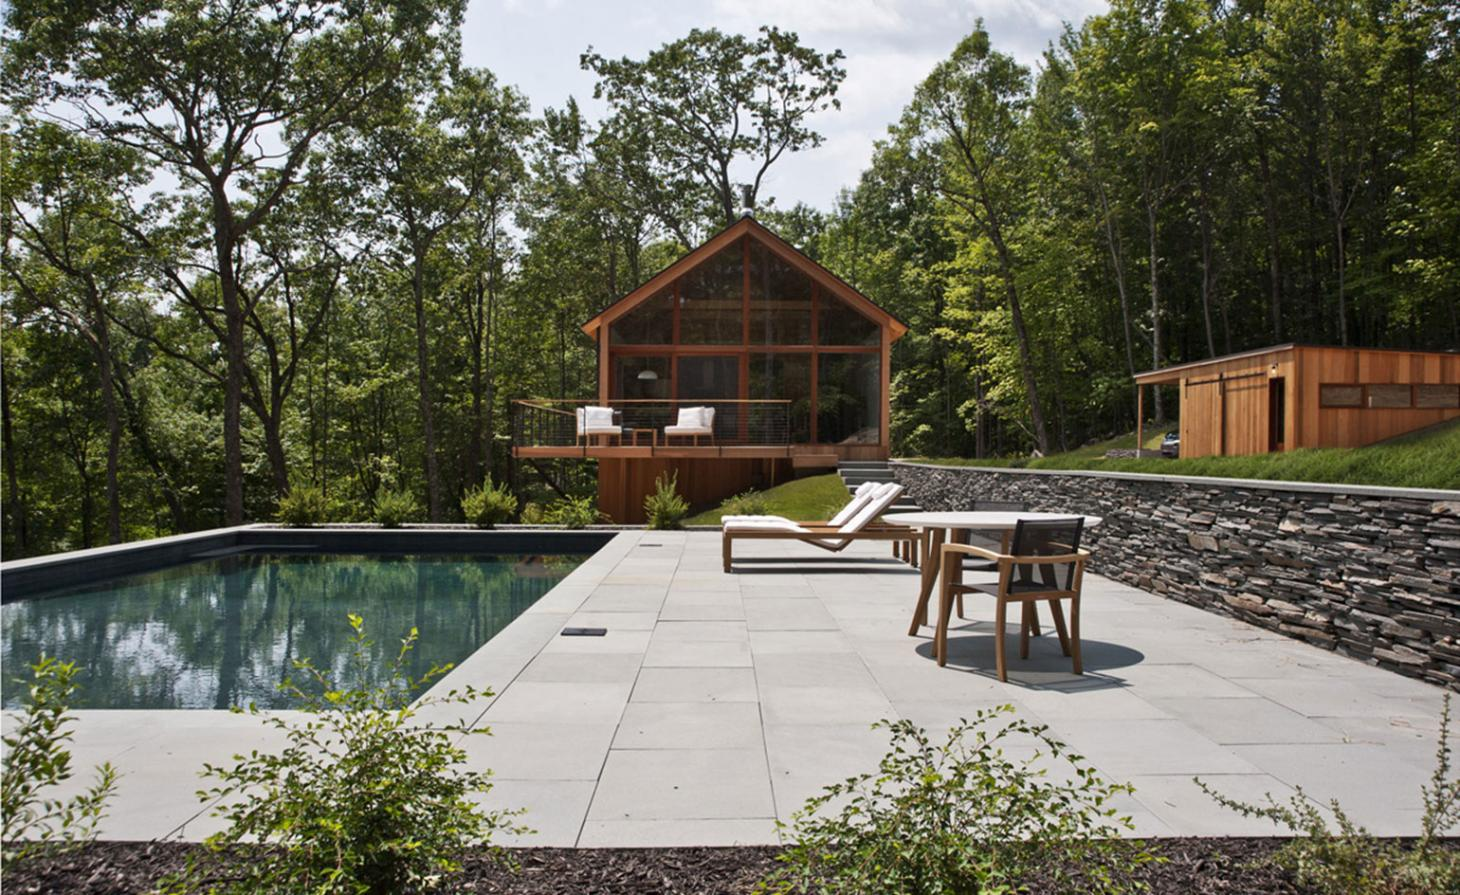 Into the woods: a private tour of Upstate New York's latest architectural retreat